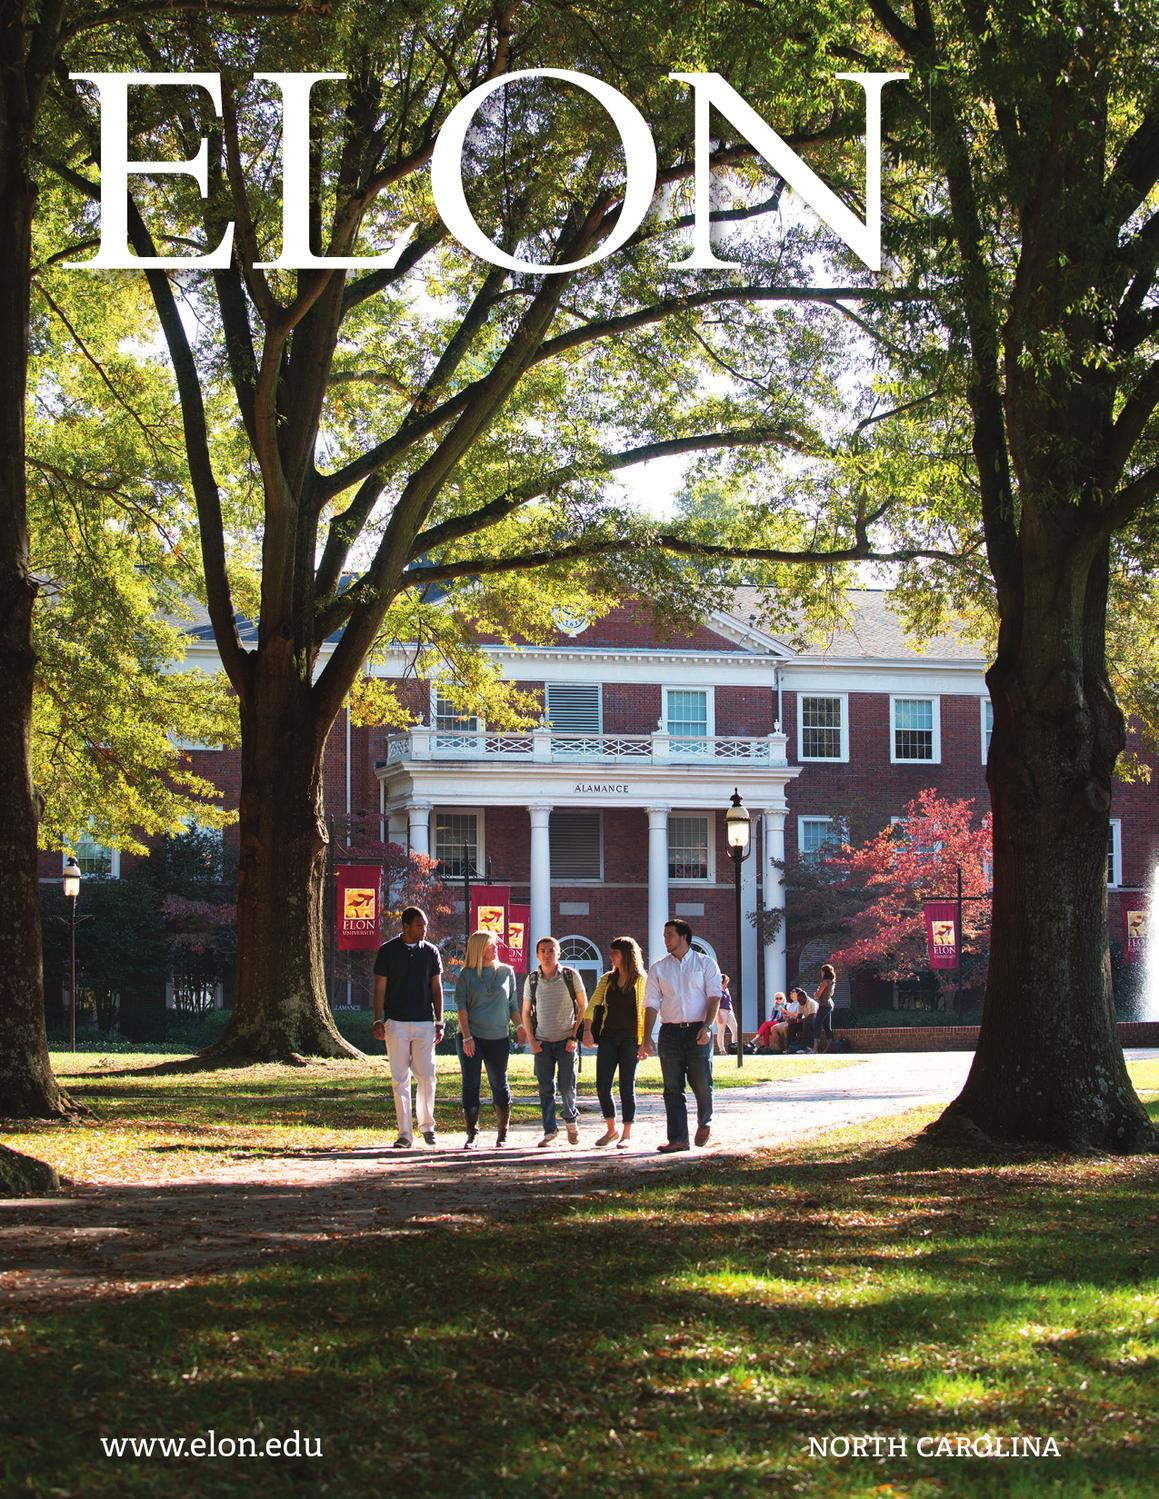 elon university application essay Elon university essay 2016 - coalition application essay prompts if college essay organizer is supplied by your school, university of georgia's first required essay question frames it perfectly now that you're in the swing of university on your college applications, here are a essay elon tasks.